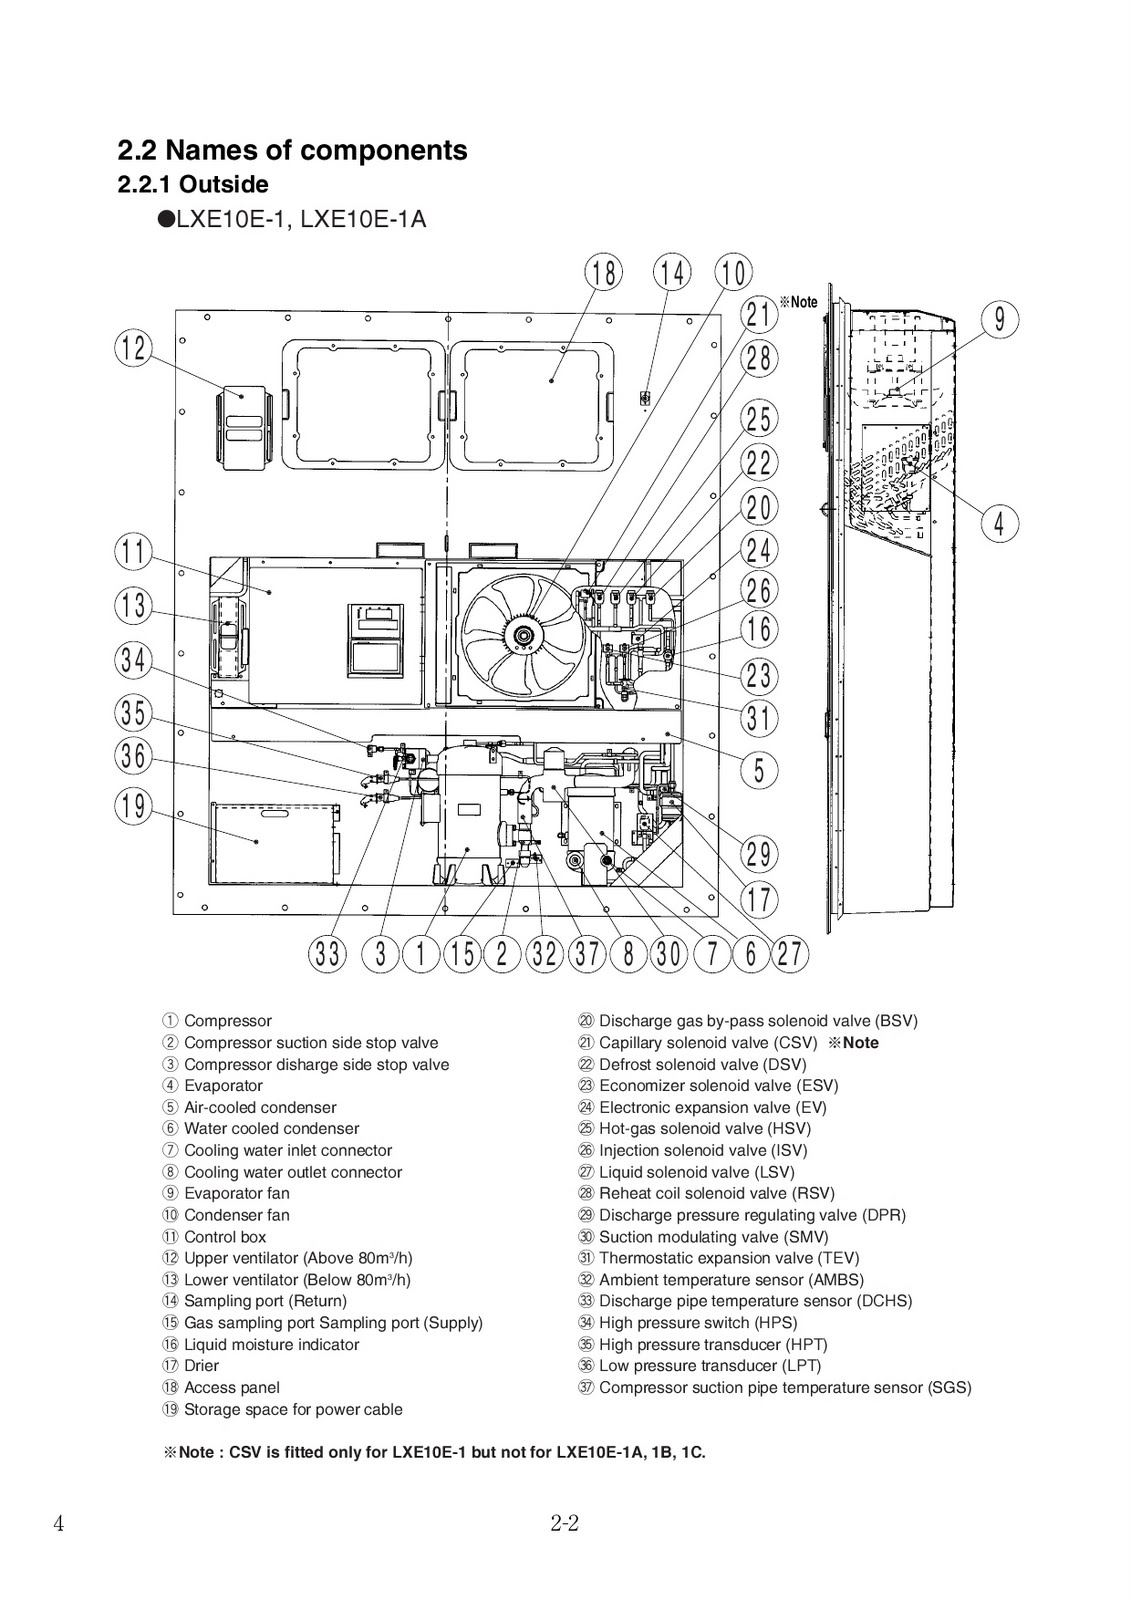 daikin lxe10e reefer machinery elephant chart for surveyor reference